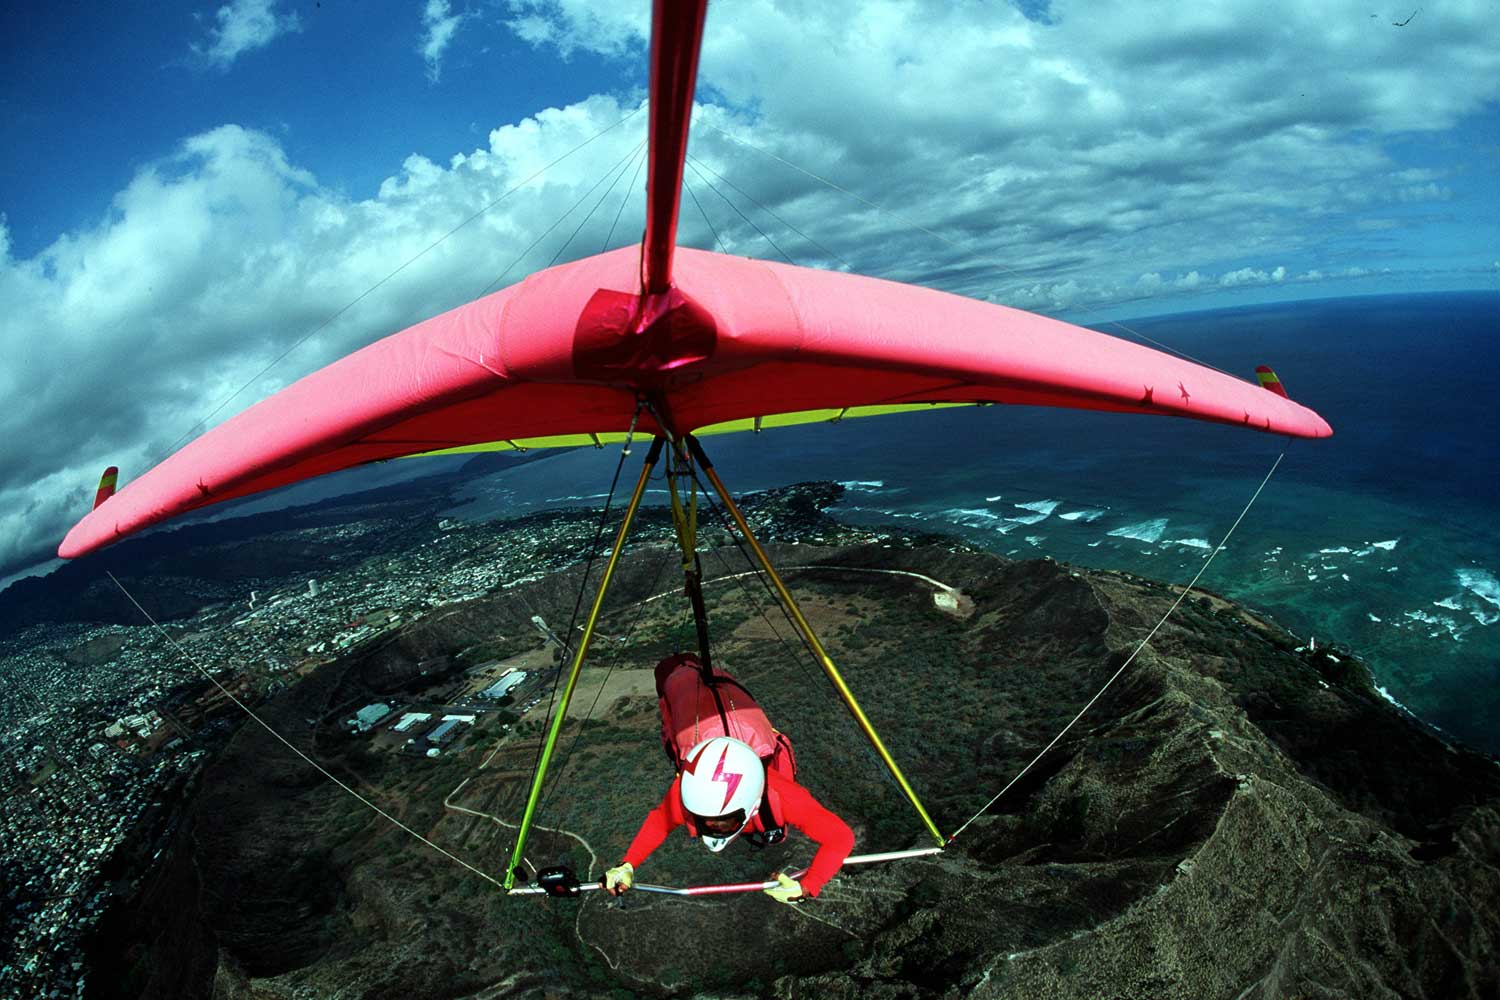 A hang gliding pilot steers his wing towards the landing zone while soaring above the ground below.